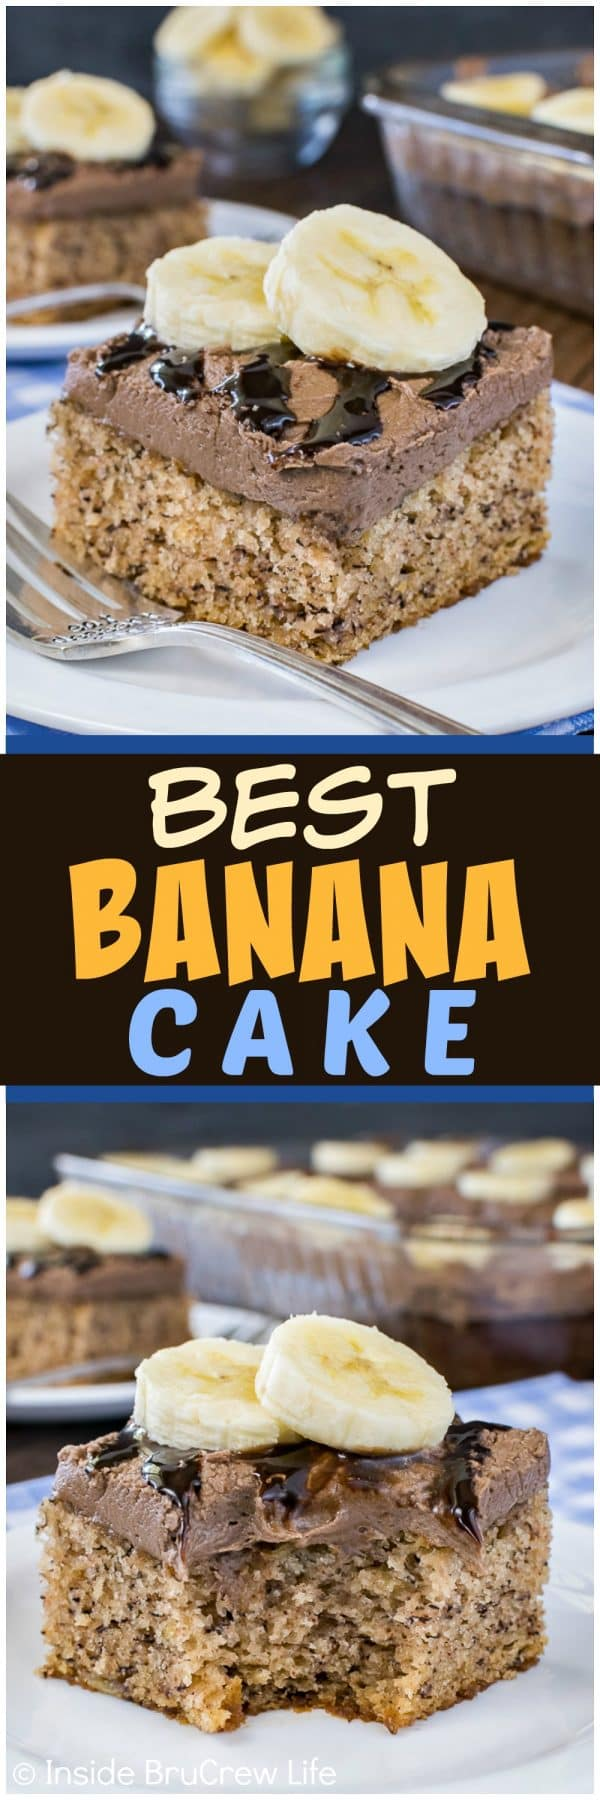 Best Banana Cake - adding hot fudge frosting and fresh bananas slices makes this easy banana cake taste amazing! It really is the best! Great dessert recipe to use up ripe bananas! #banana #bestcake #hotfudge #cake #frosting